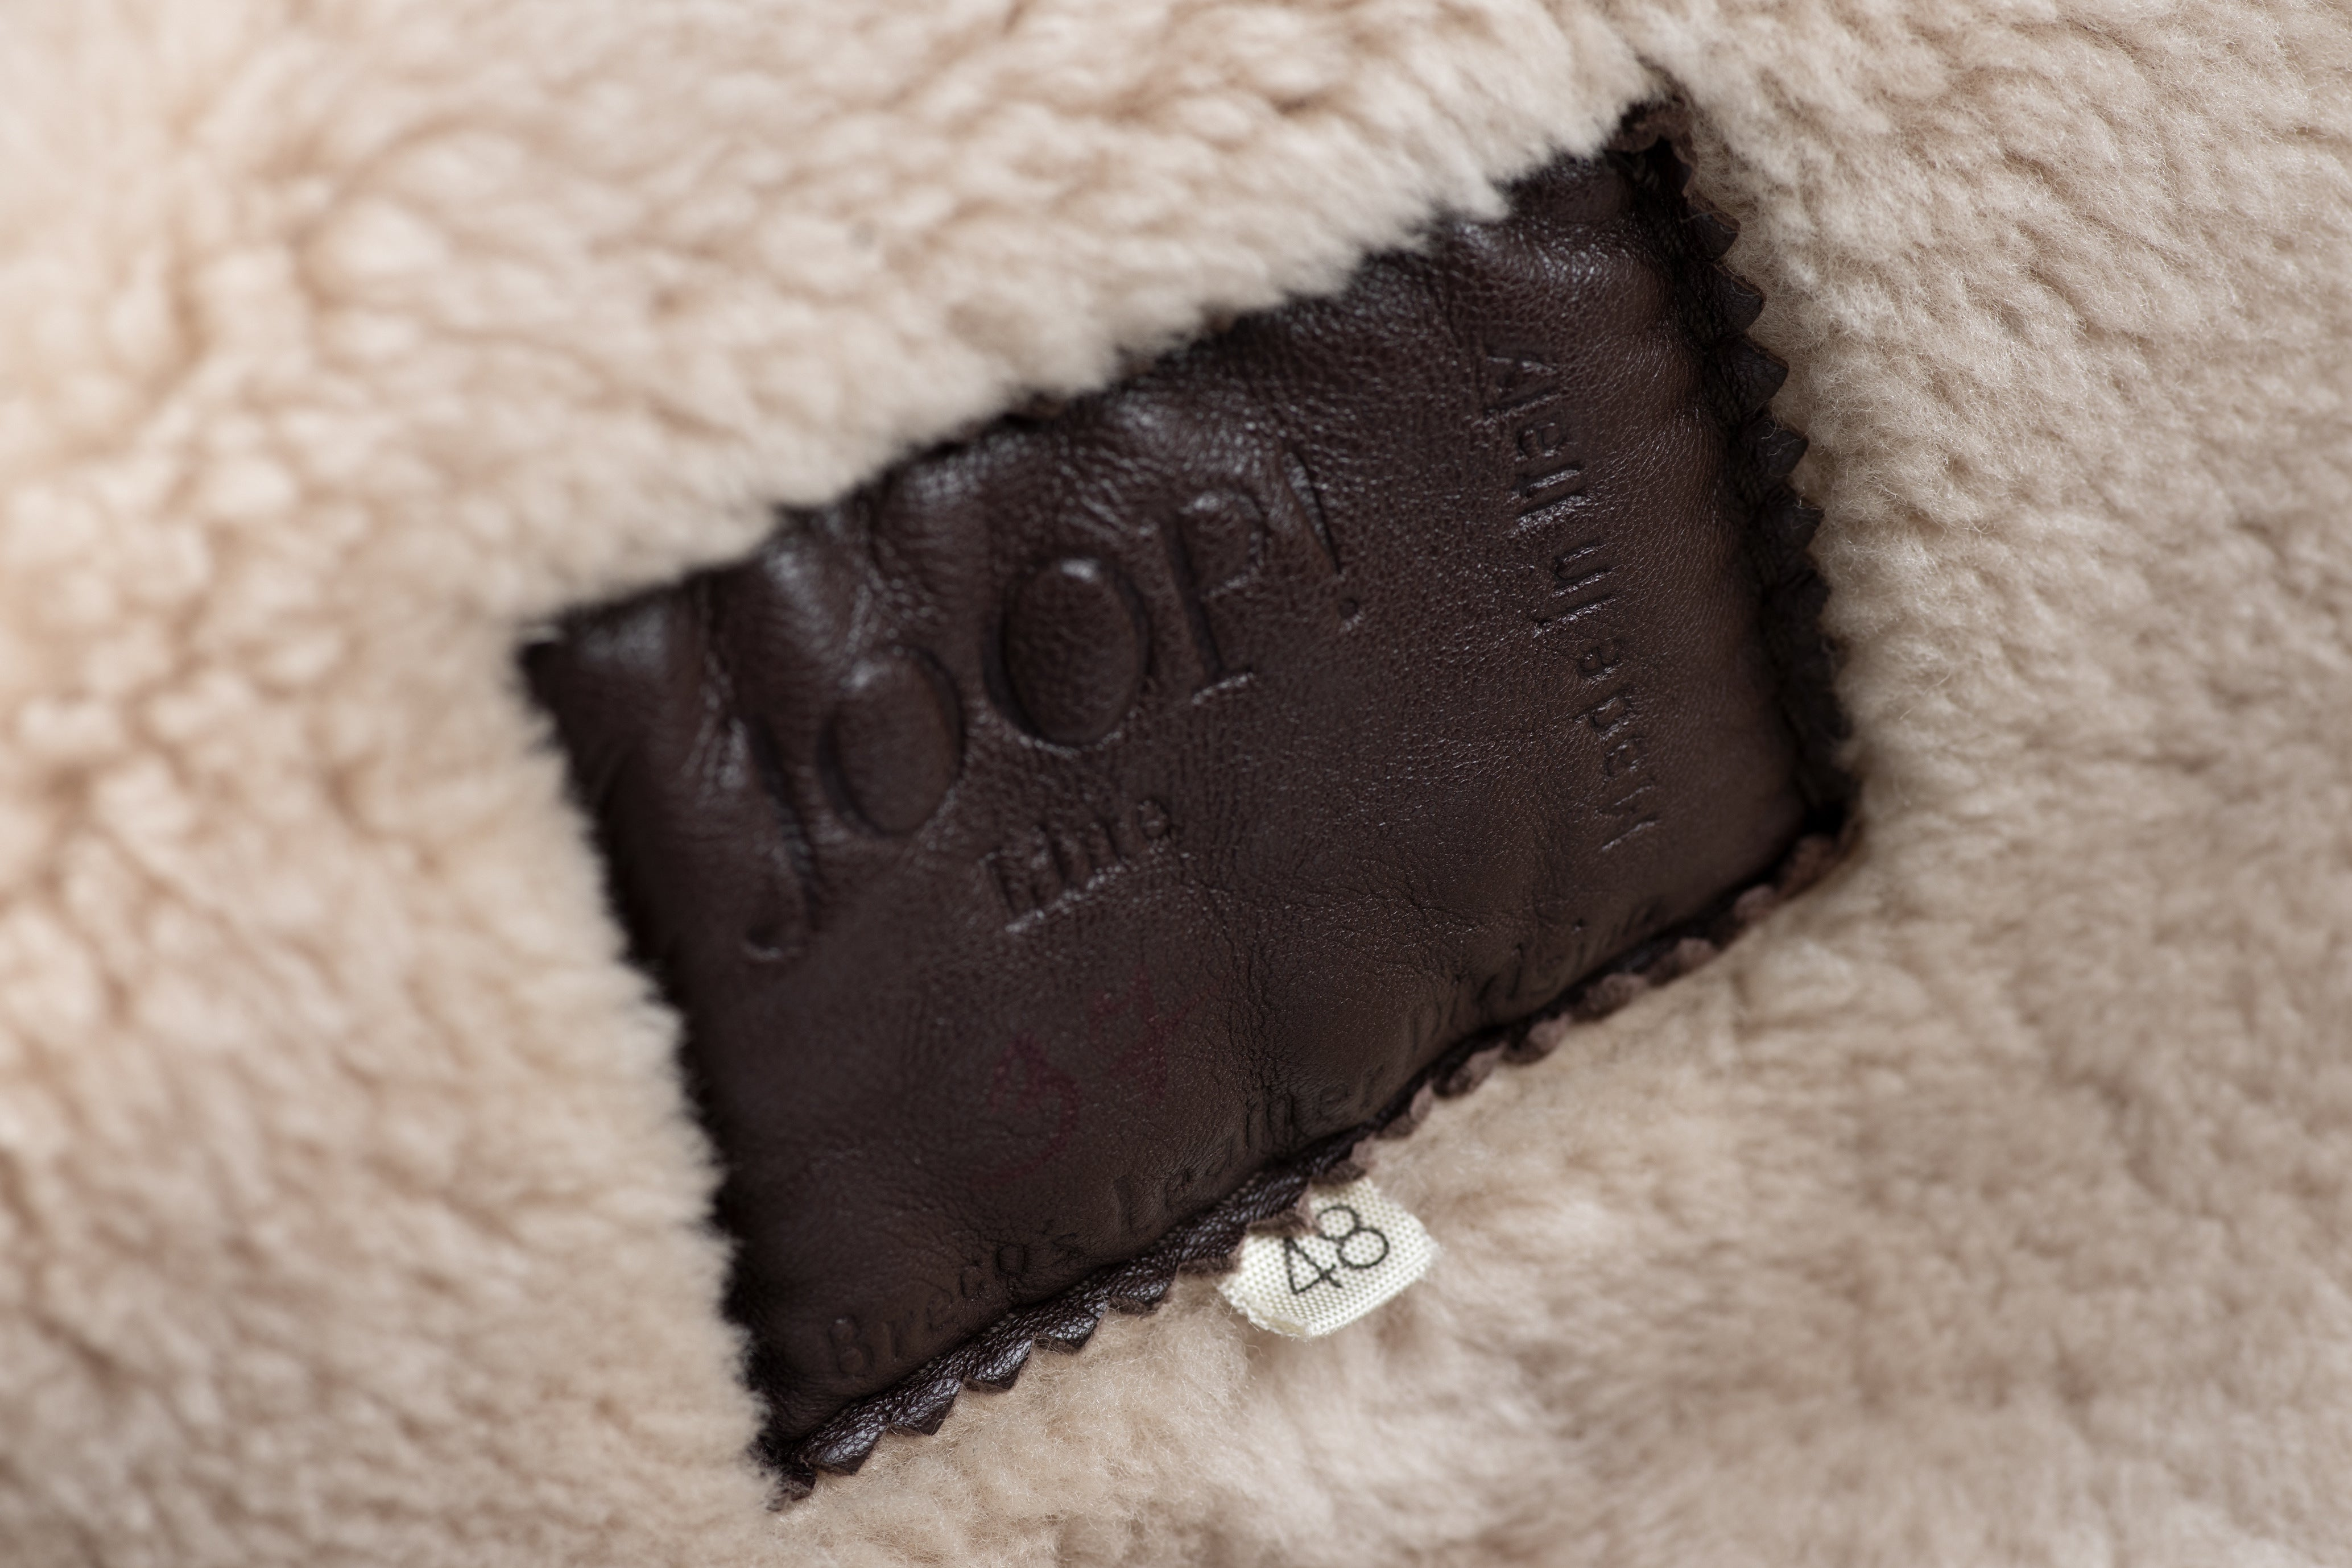 Joop Men's Brown Supple Leather Shearling Coat with Shawl Collar, L